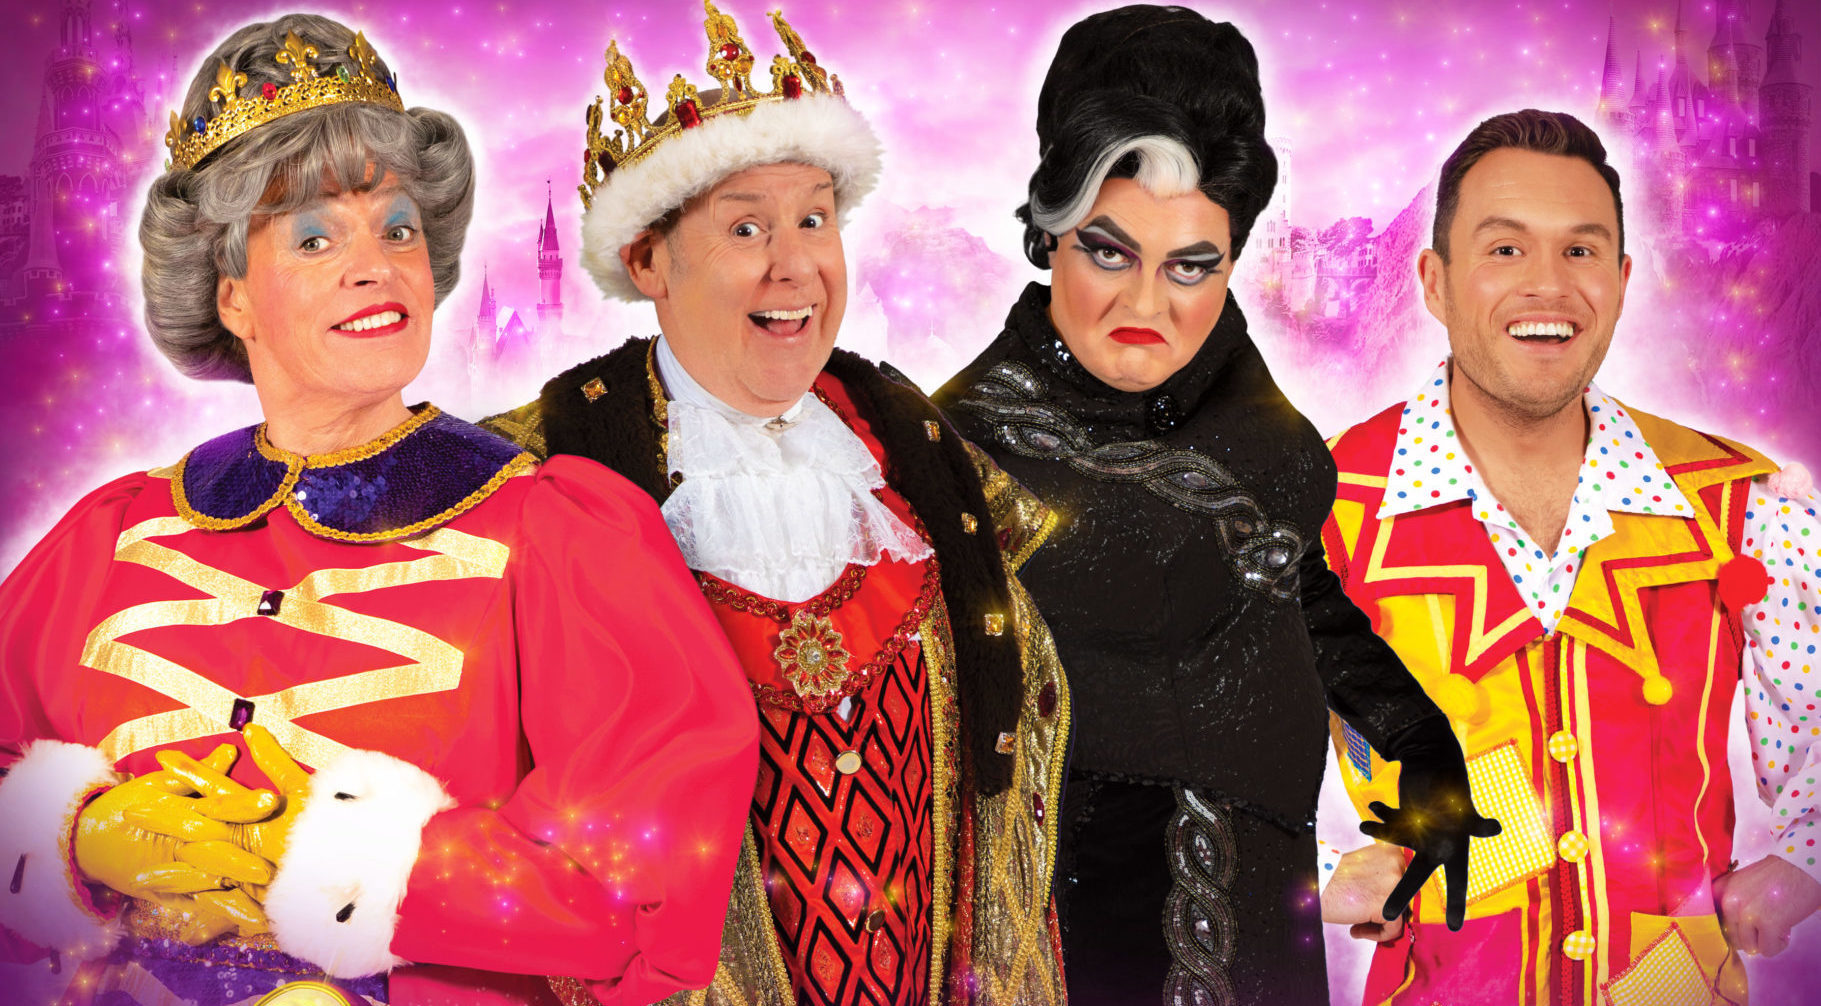 The pantomime poster